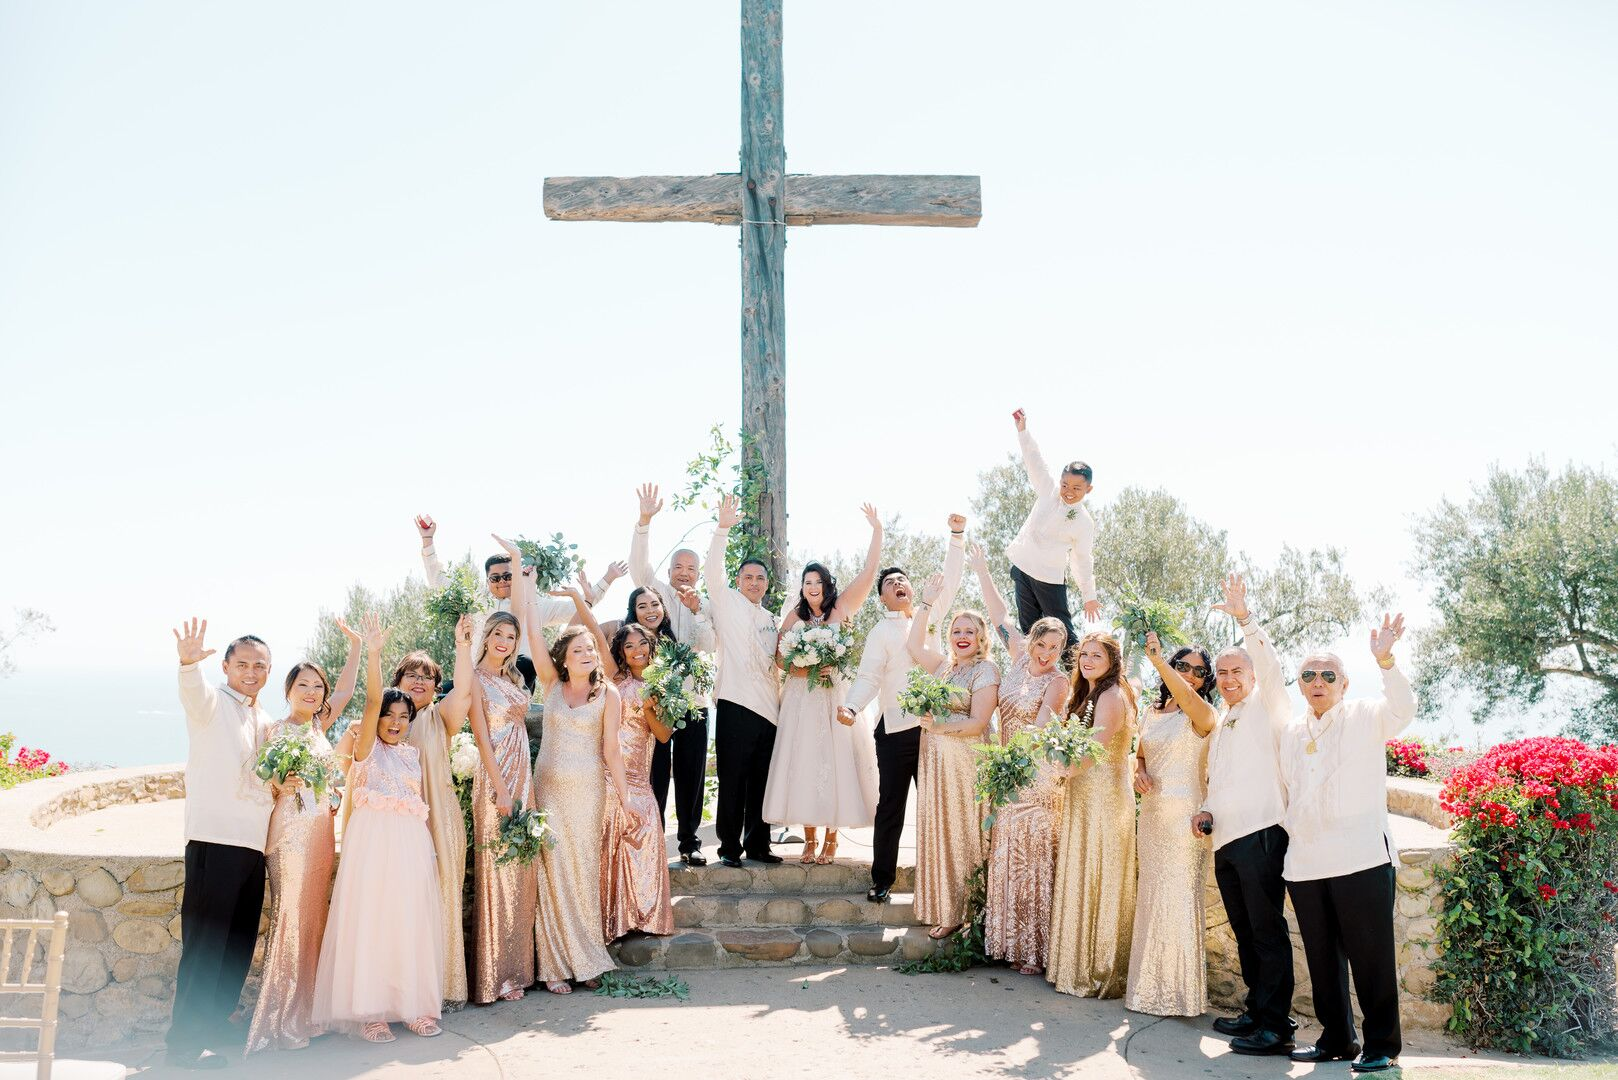 wwww.santabarbawedding.com | Planner: Vintage Heart Events | Ceremony Venue: Serra Cross Park | Photographer: Haley Richter Photography | Wedding Party - After Ceremony